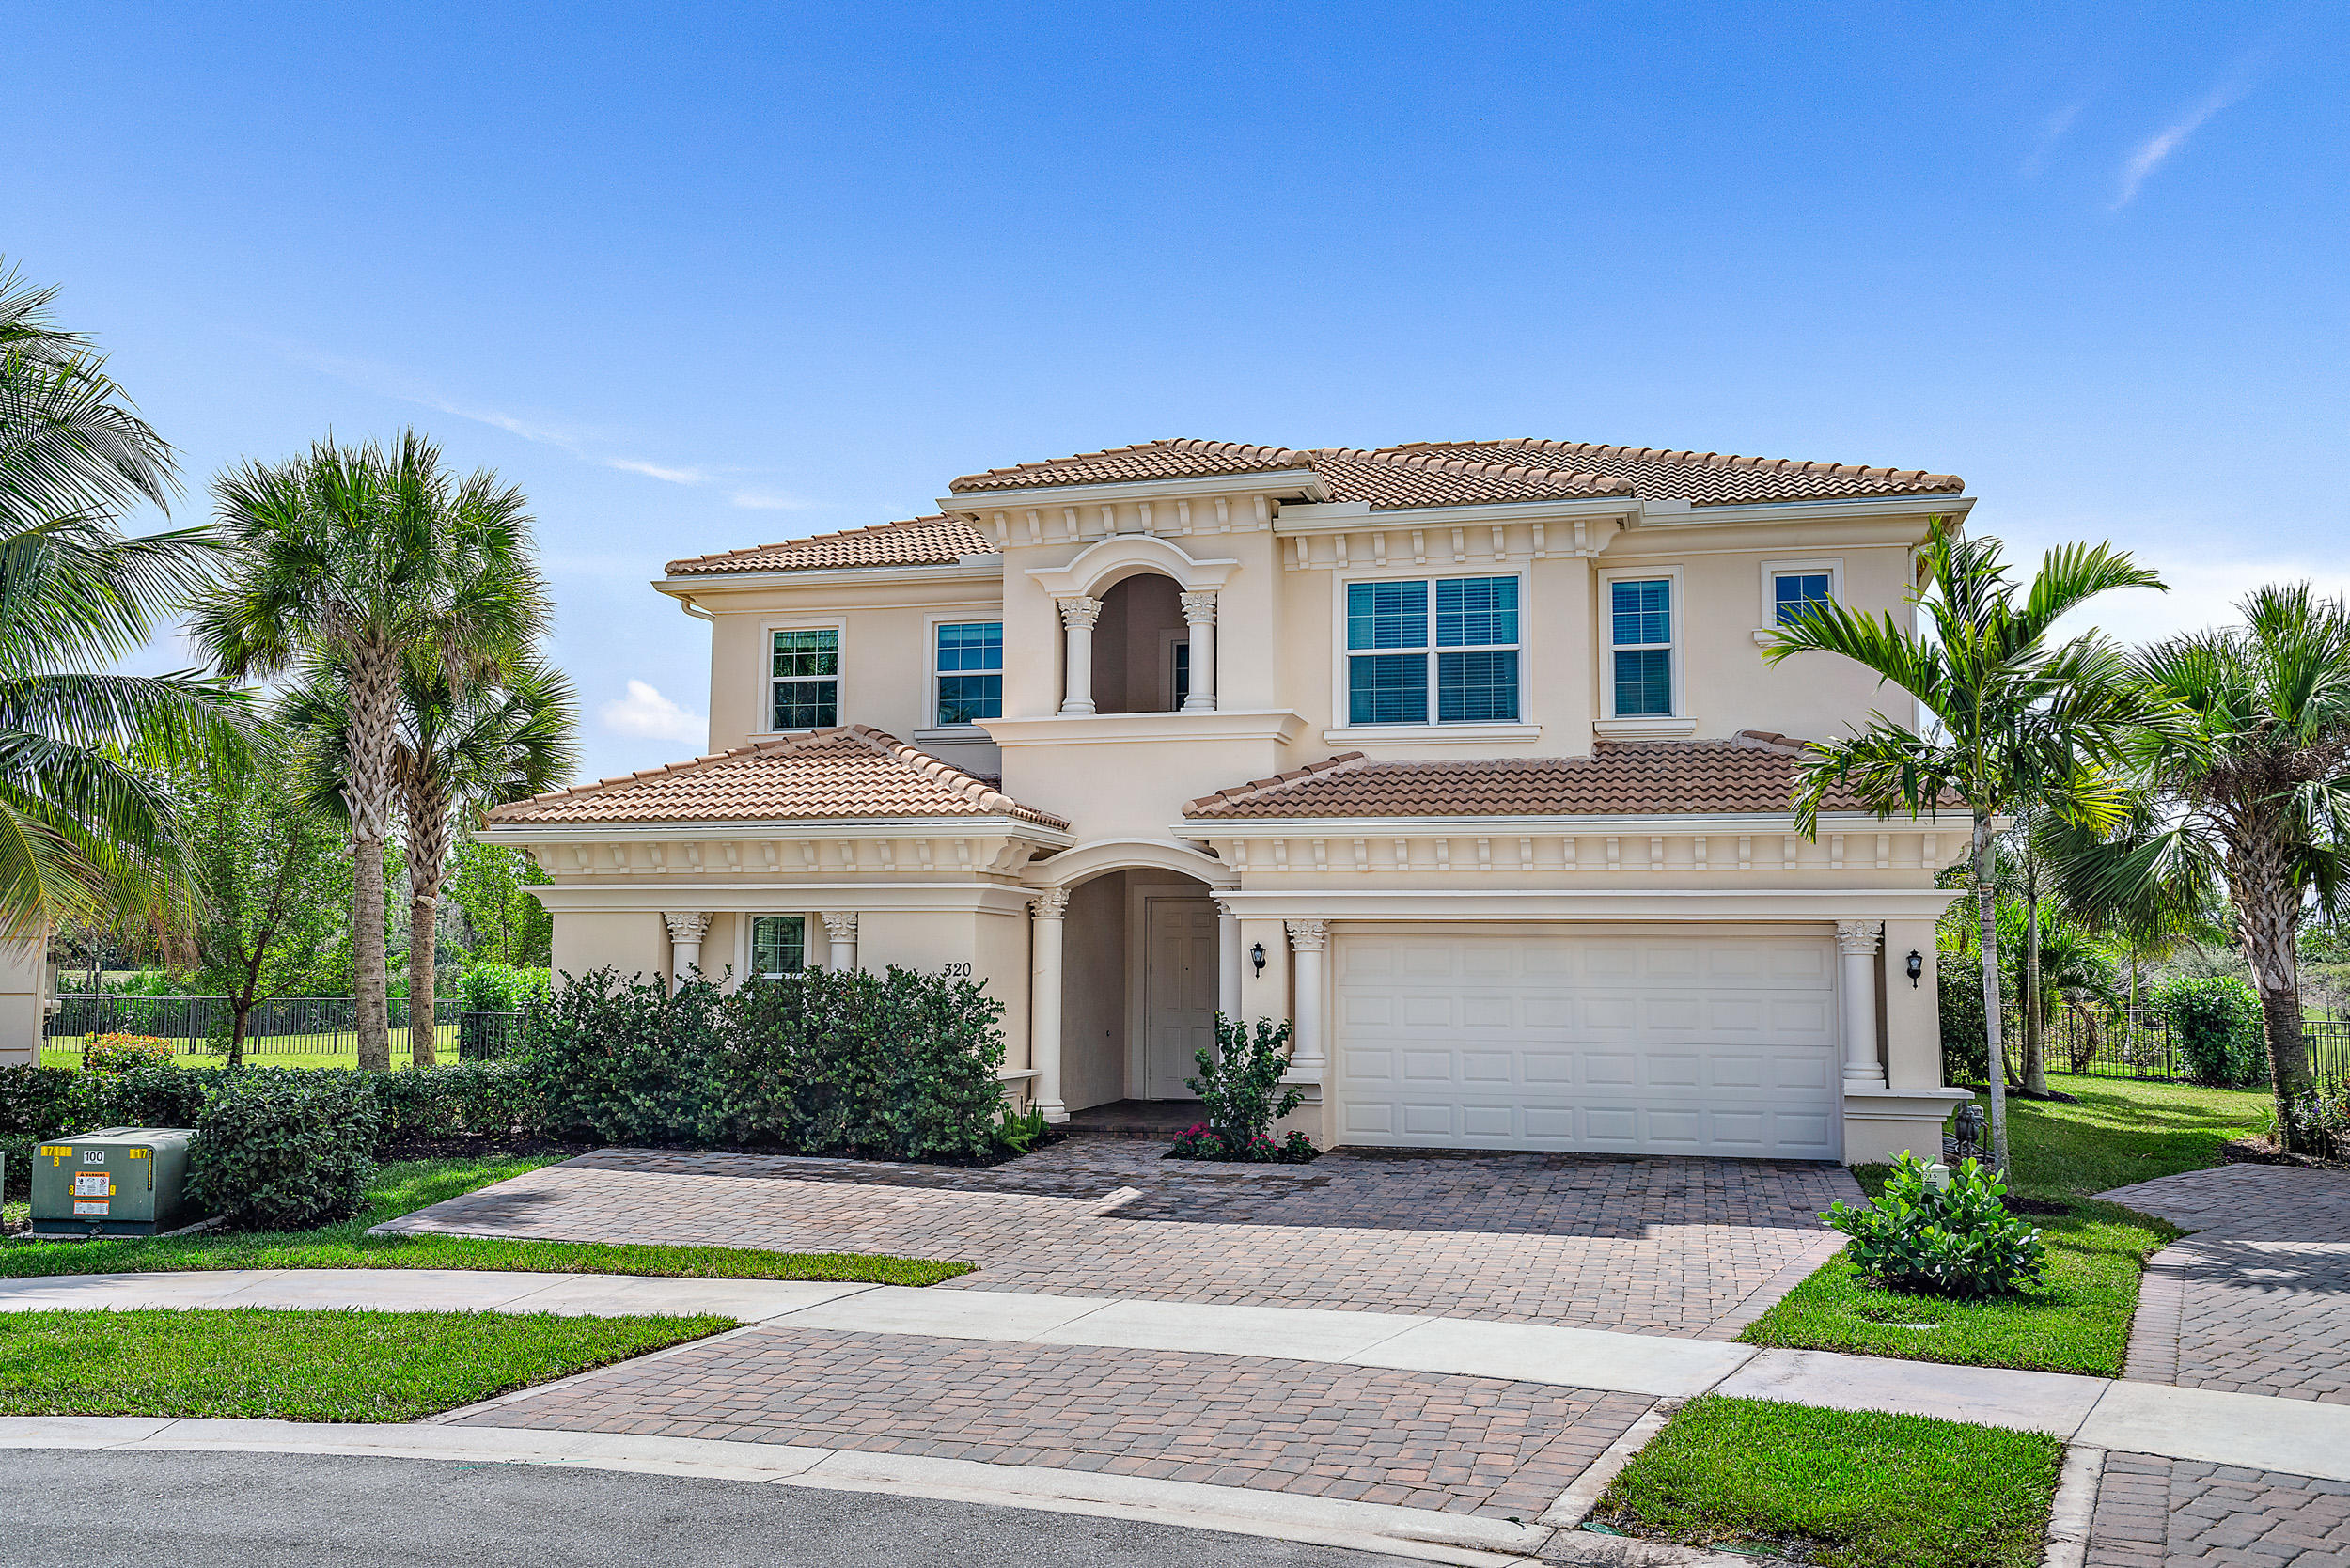 New Home for sale at 320 Carina Drive in Jupiter